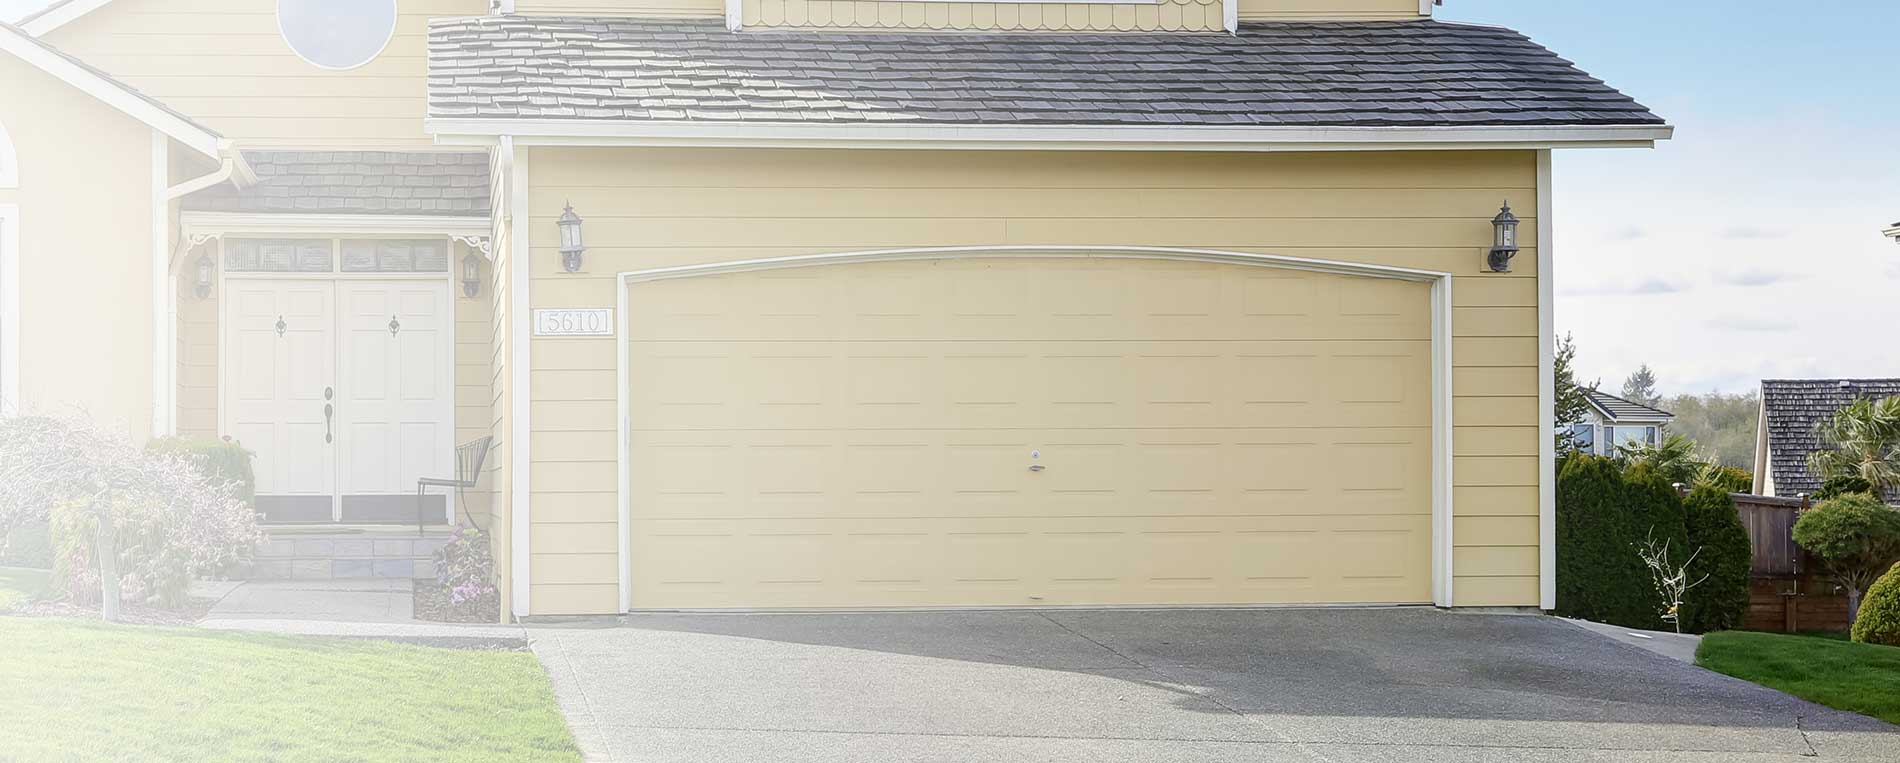 How To Maintain a Steel Garage Door